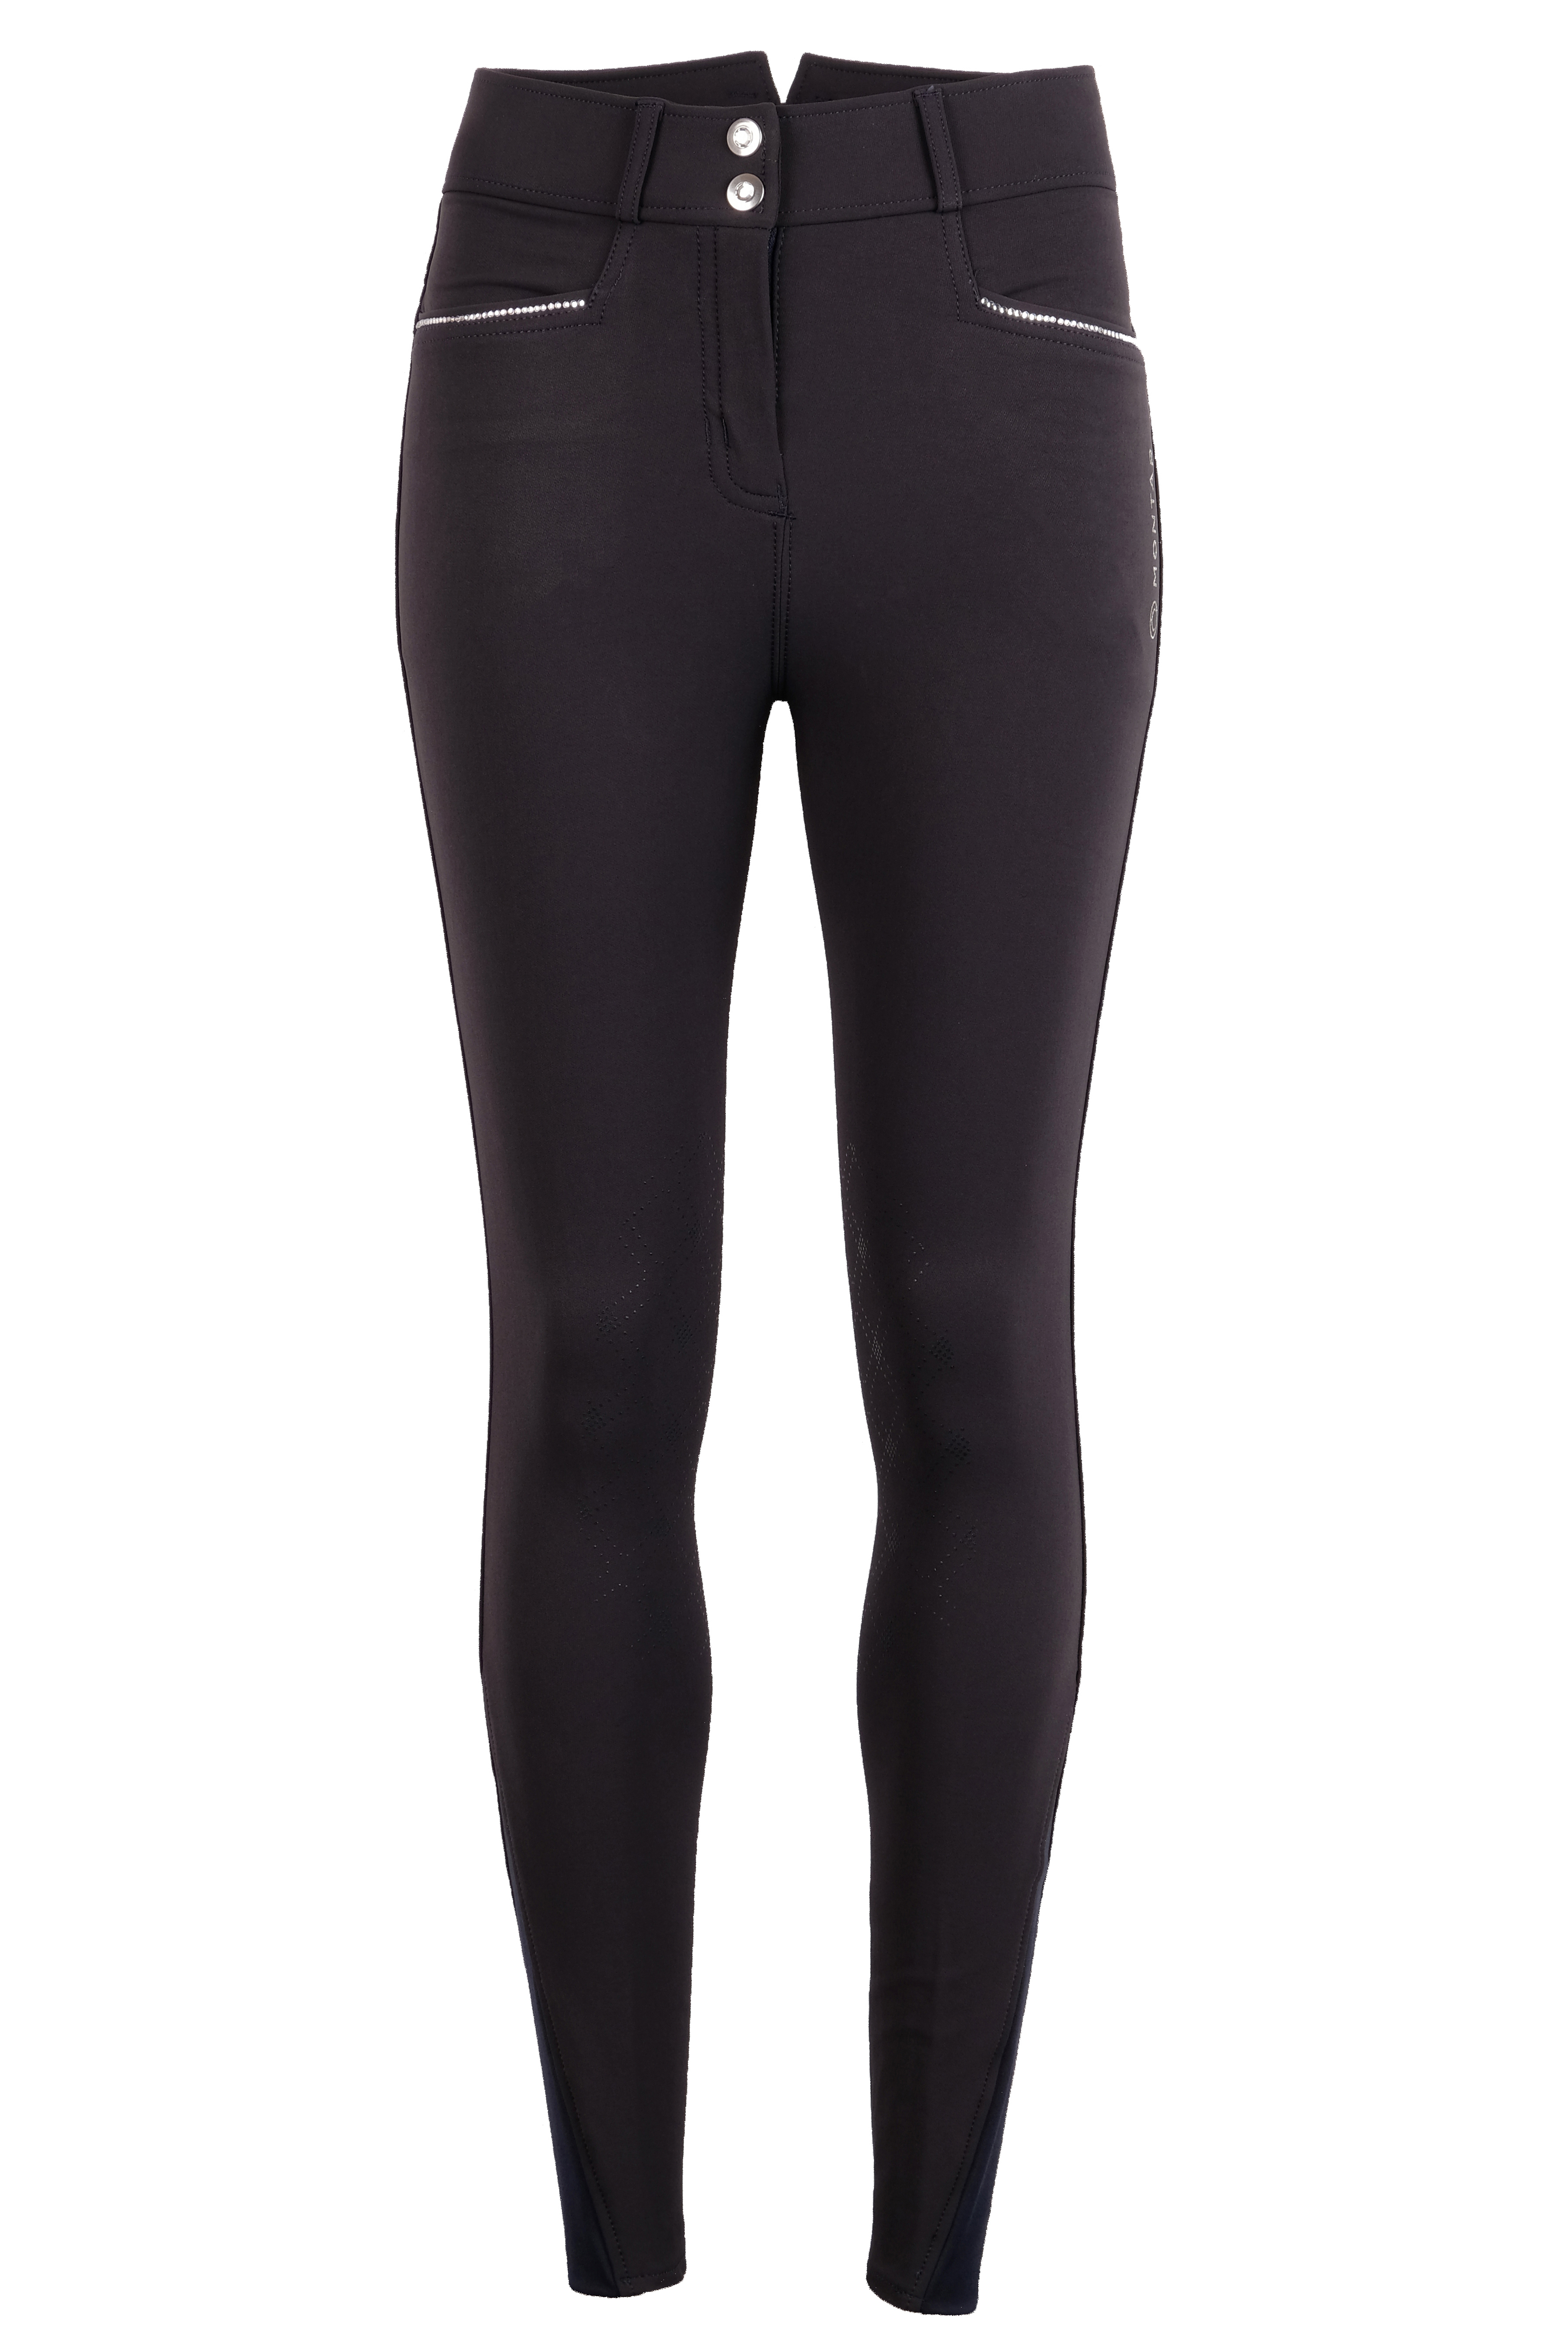 21110-71 Romy Crystal Lines Breeches Navy Kneegrip Front.jpg